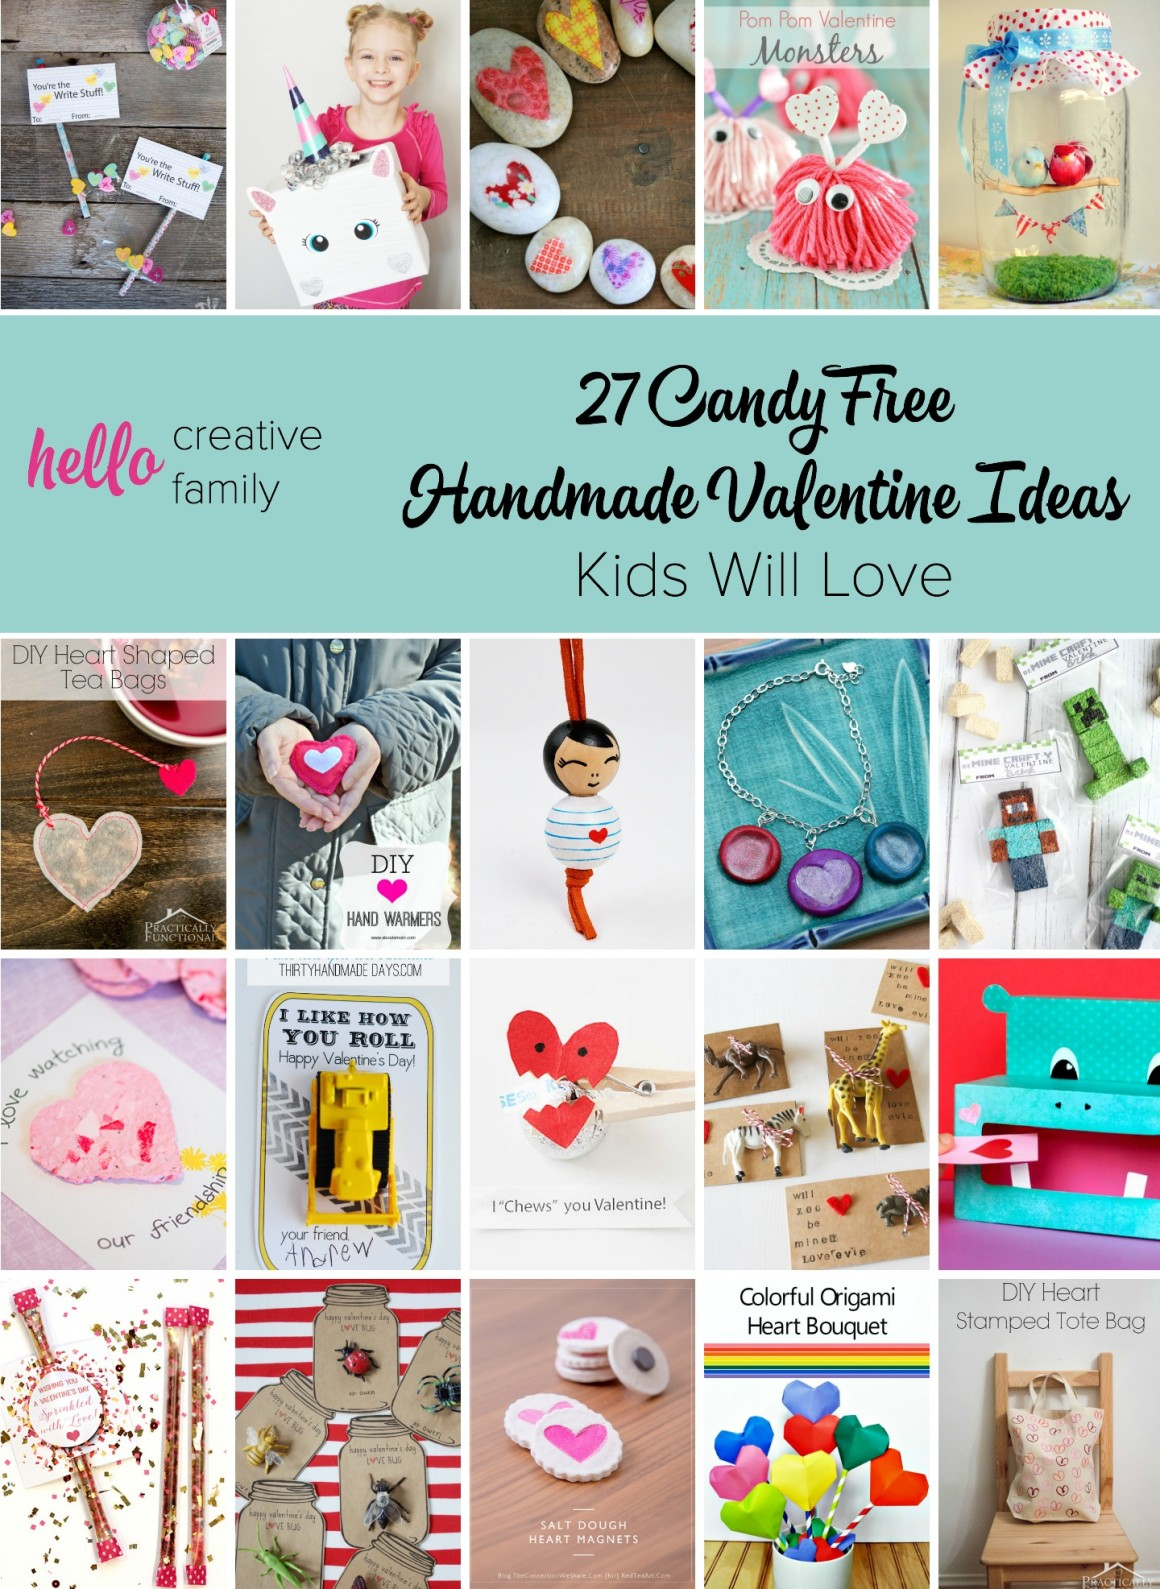 I'm so tired of all the candy that fills my house each holiday! Here are 27 amazing candy free handmade Valentine Ideas that kids will love